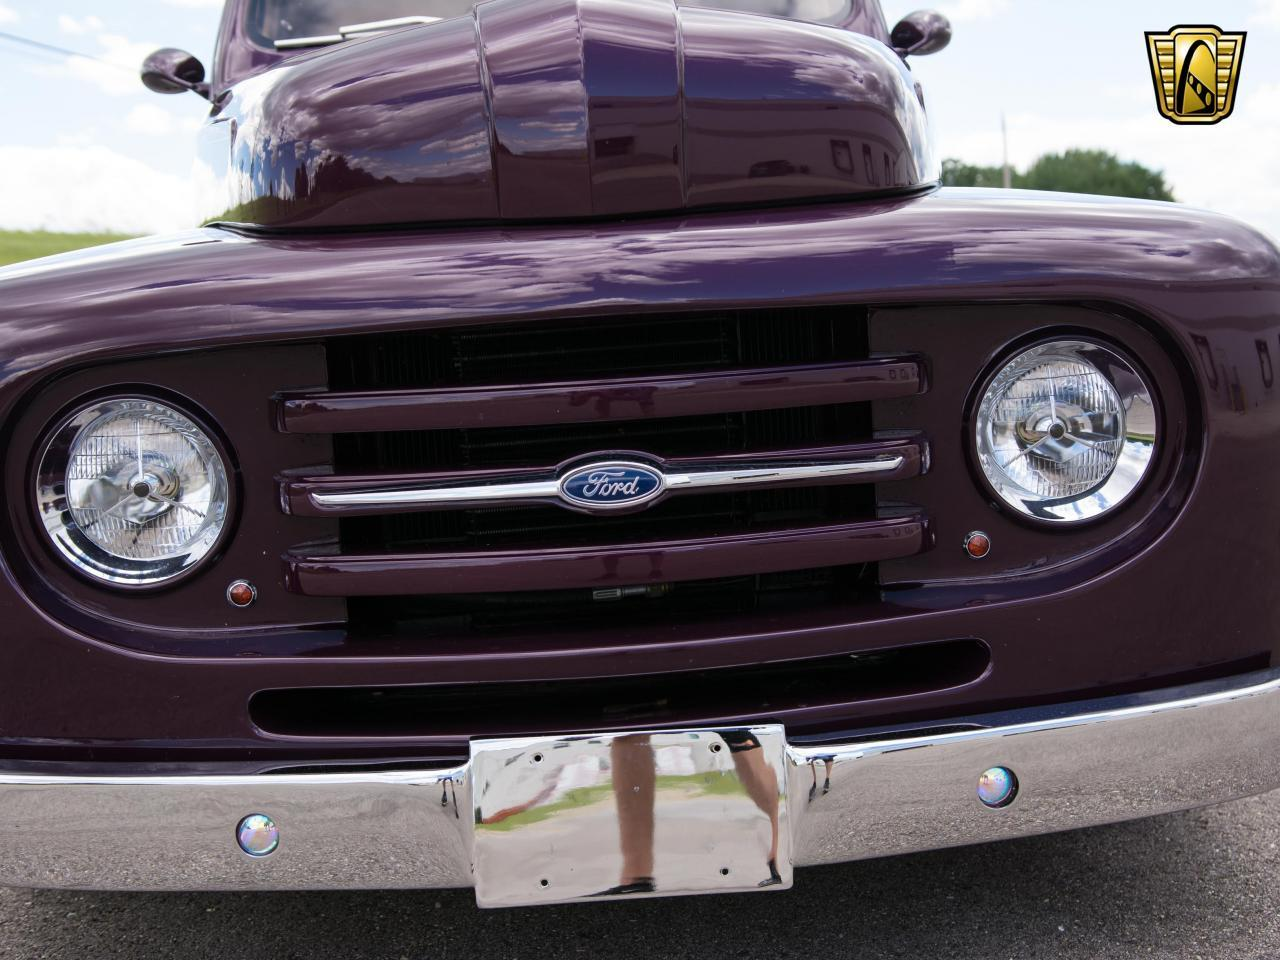 Large Picture of Classic '48 Ford F100 located in Kenosha Wisconsin - $37,995.00 Offered by Gateway Classic Cars - Milwaukee - LHK0